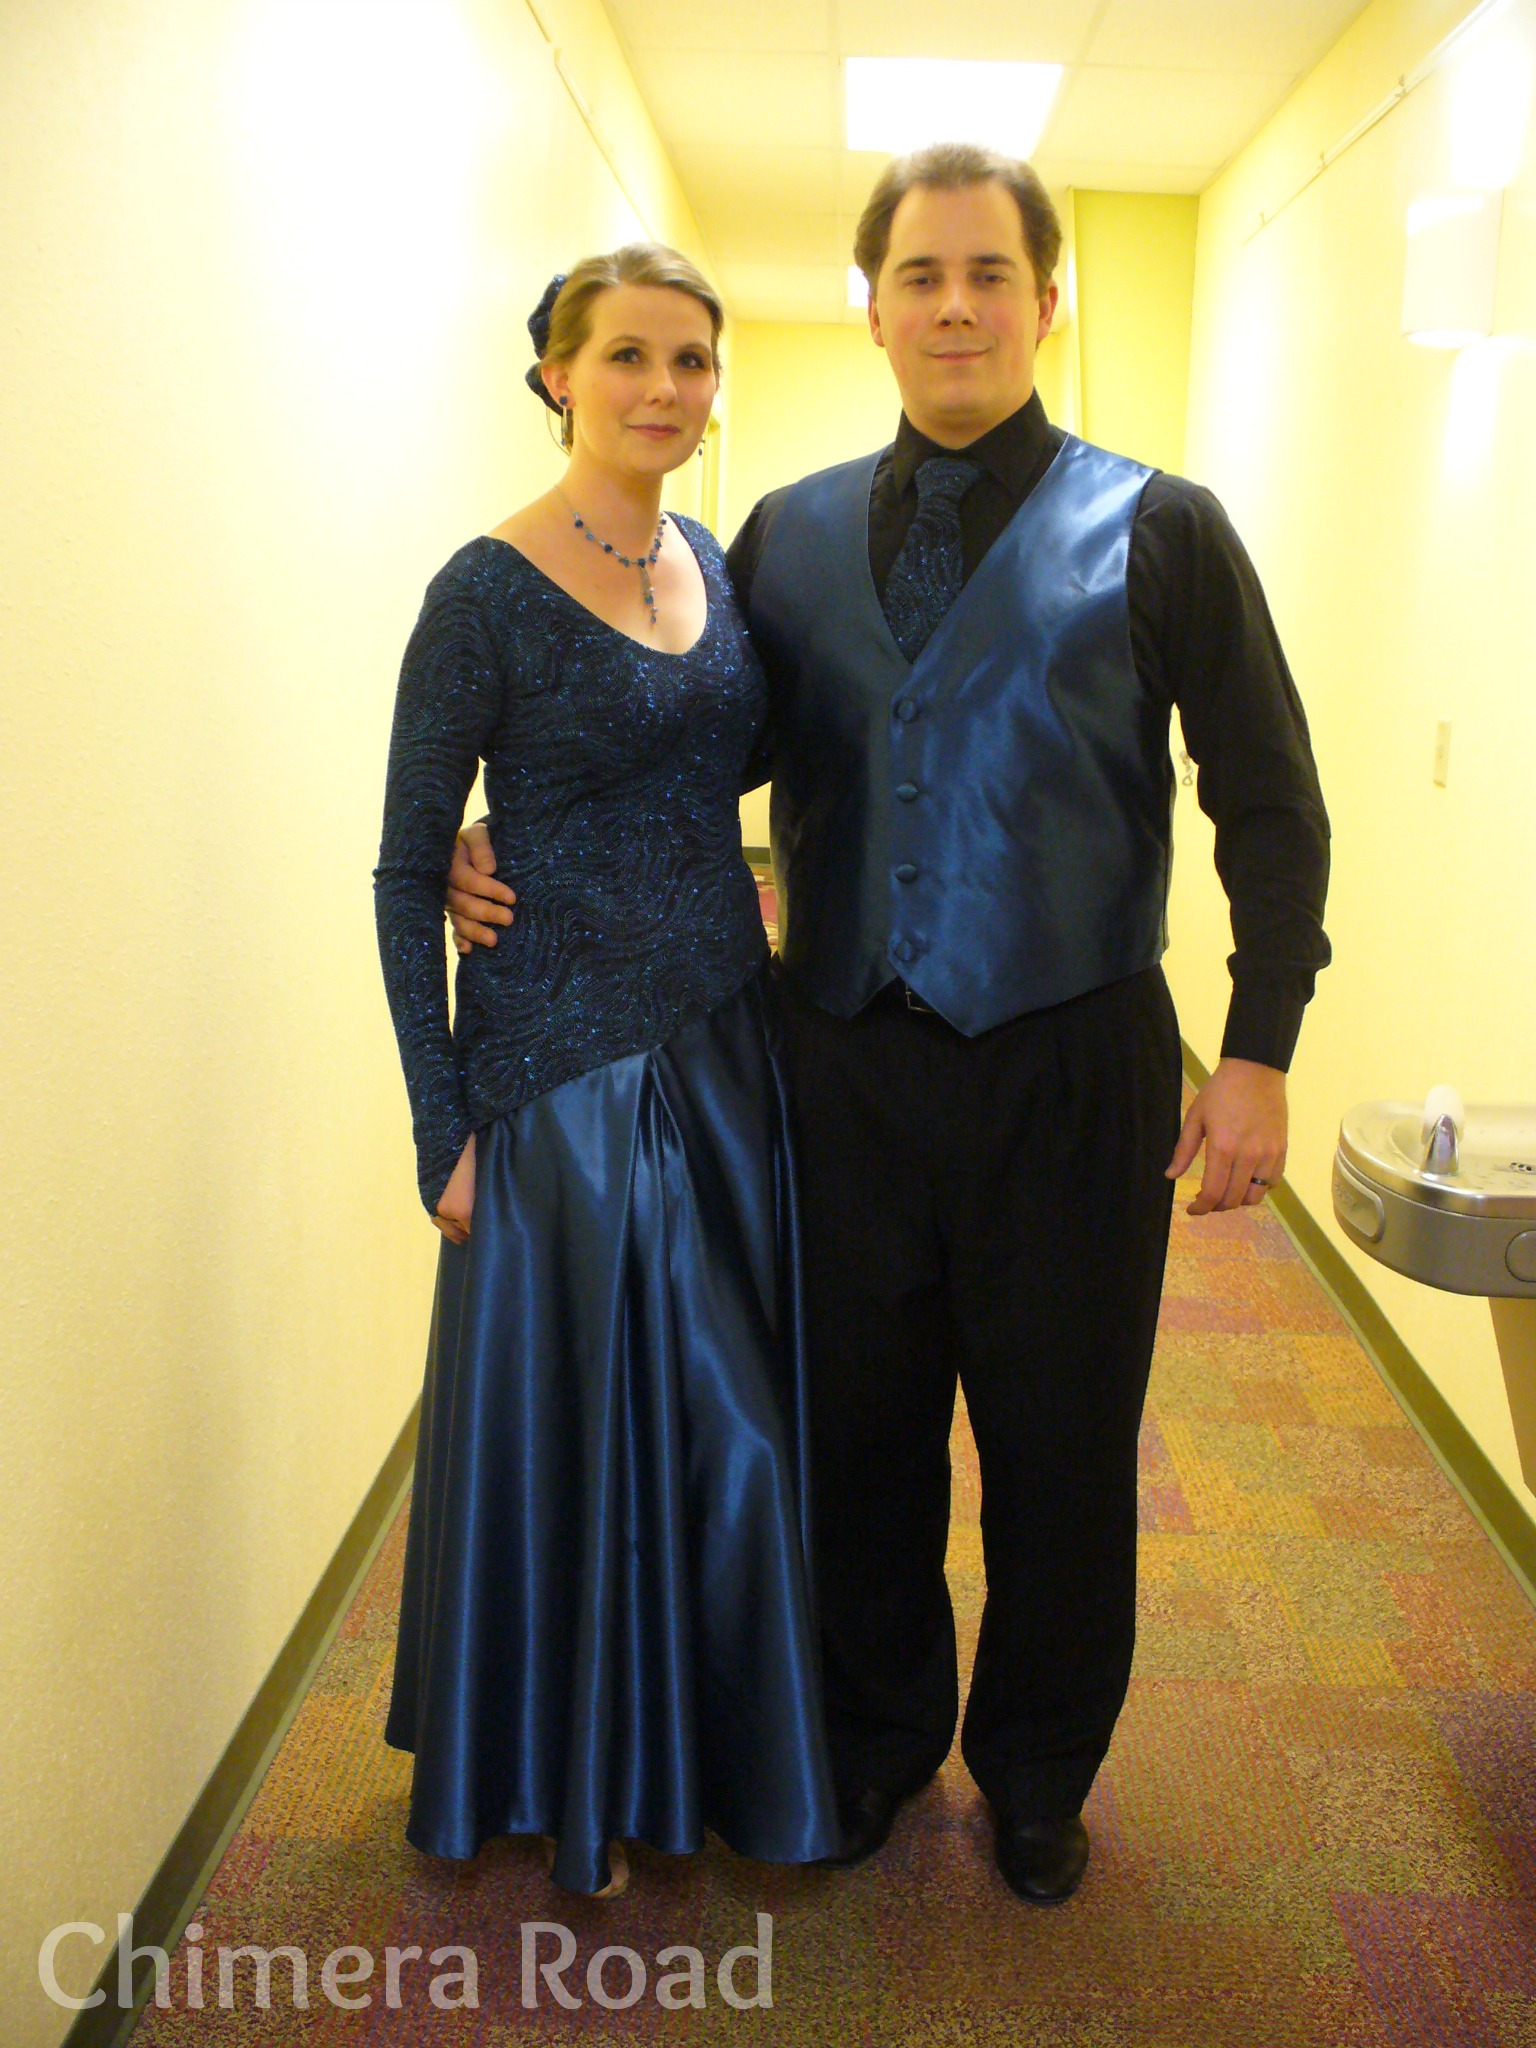 From back in our competition days... our waltz outfits! (Made by me!)